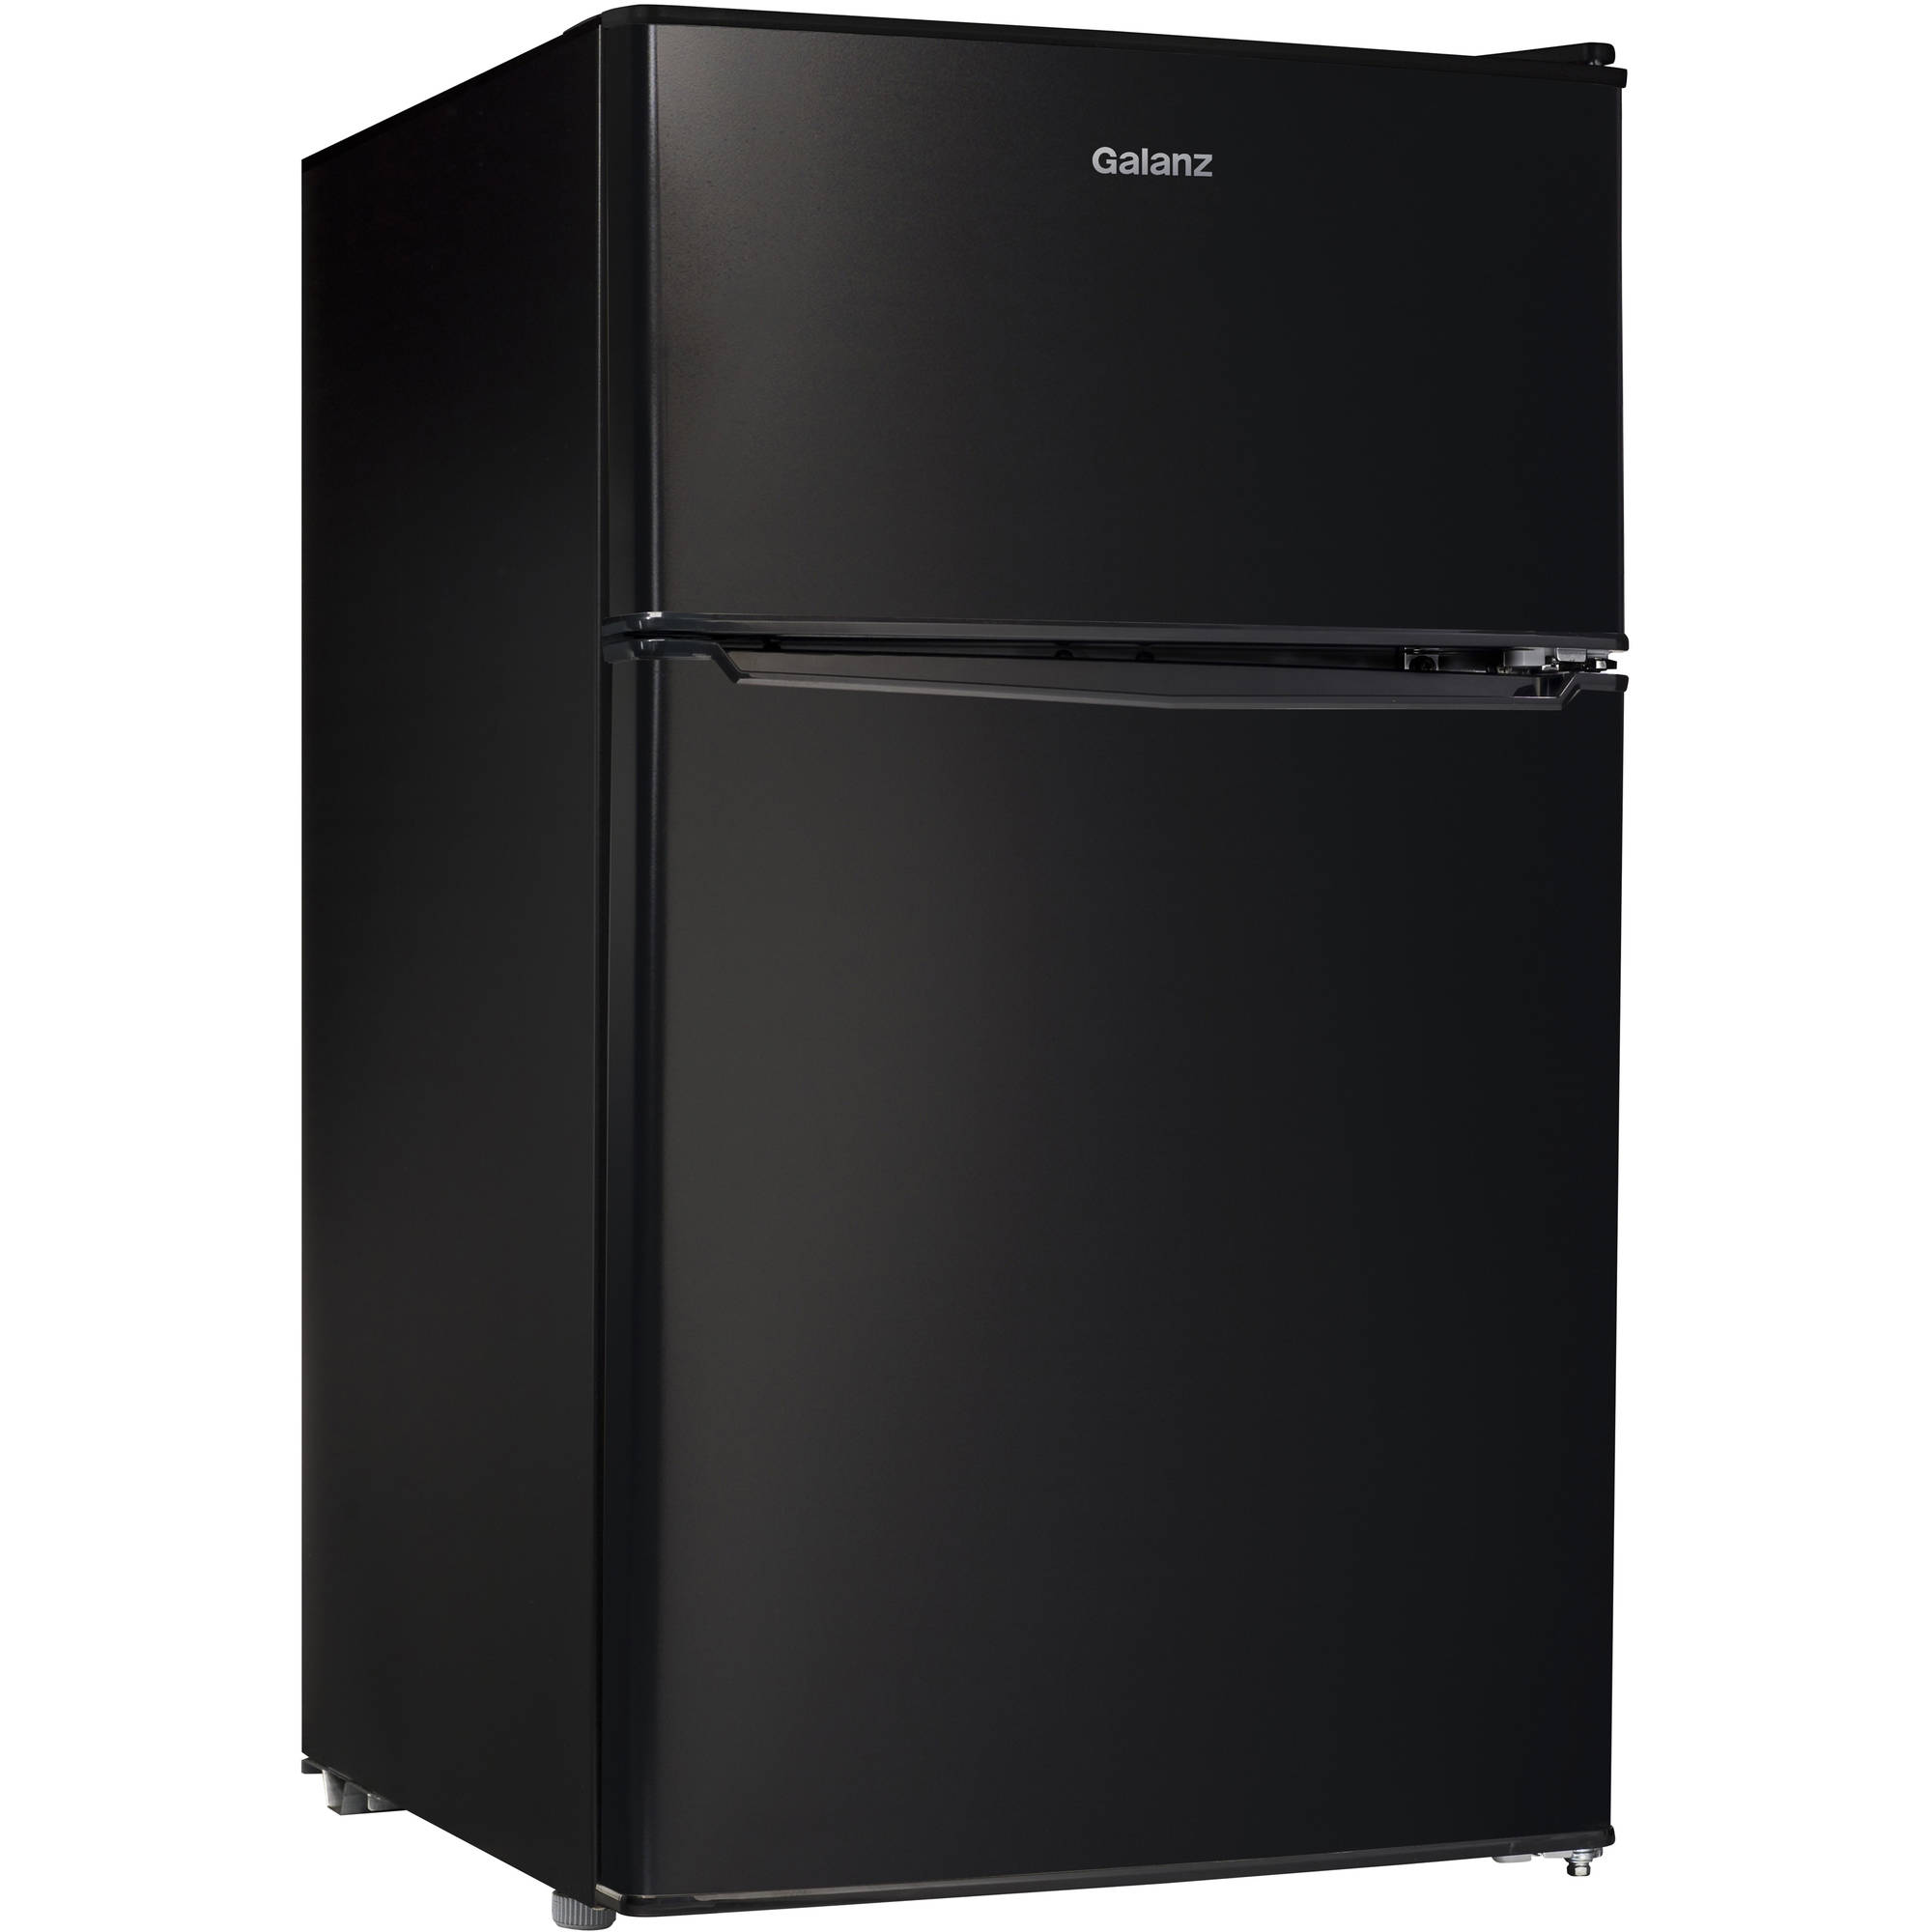 High Quality Galanz 3.1 Cu Ft Double Door Mini Fridge GL31BK, Black   Walmart.com